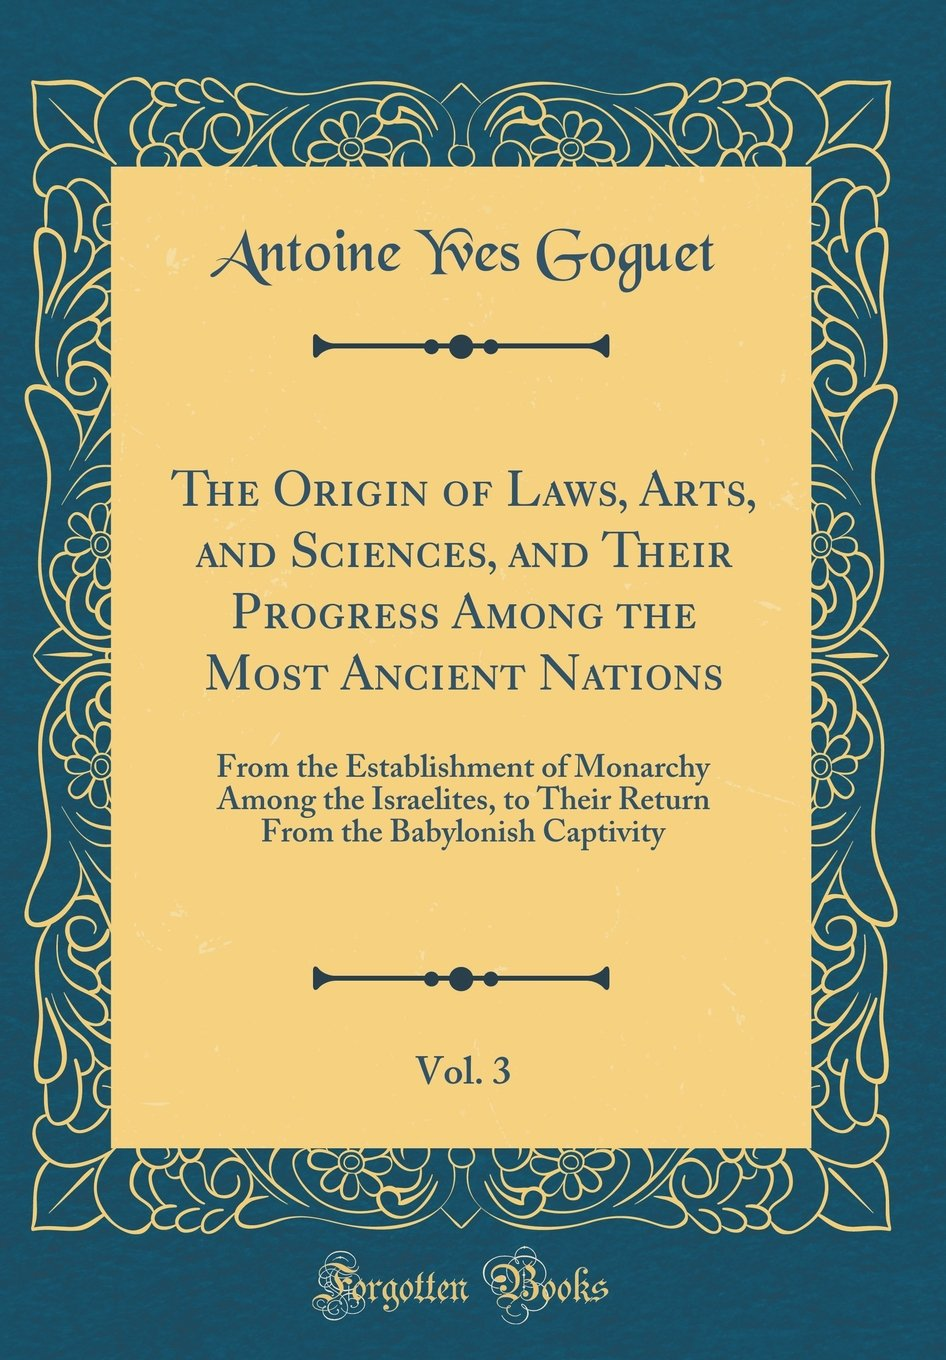 Read Online The Origin of Laws, Arts, and Sciences, and Their Progress Among the Most Ancient Nations, Vol. 3: From the Establishment of Monarchy Among the ... the Babylonish Captivity (Classic Reprint) ebook